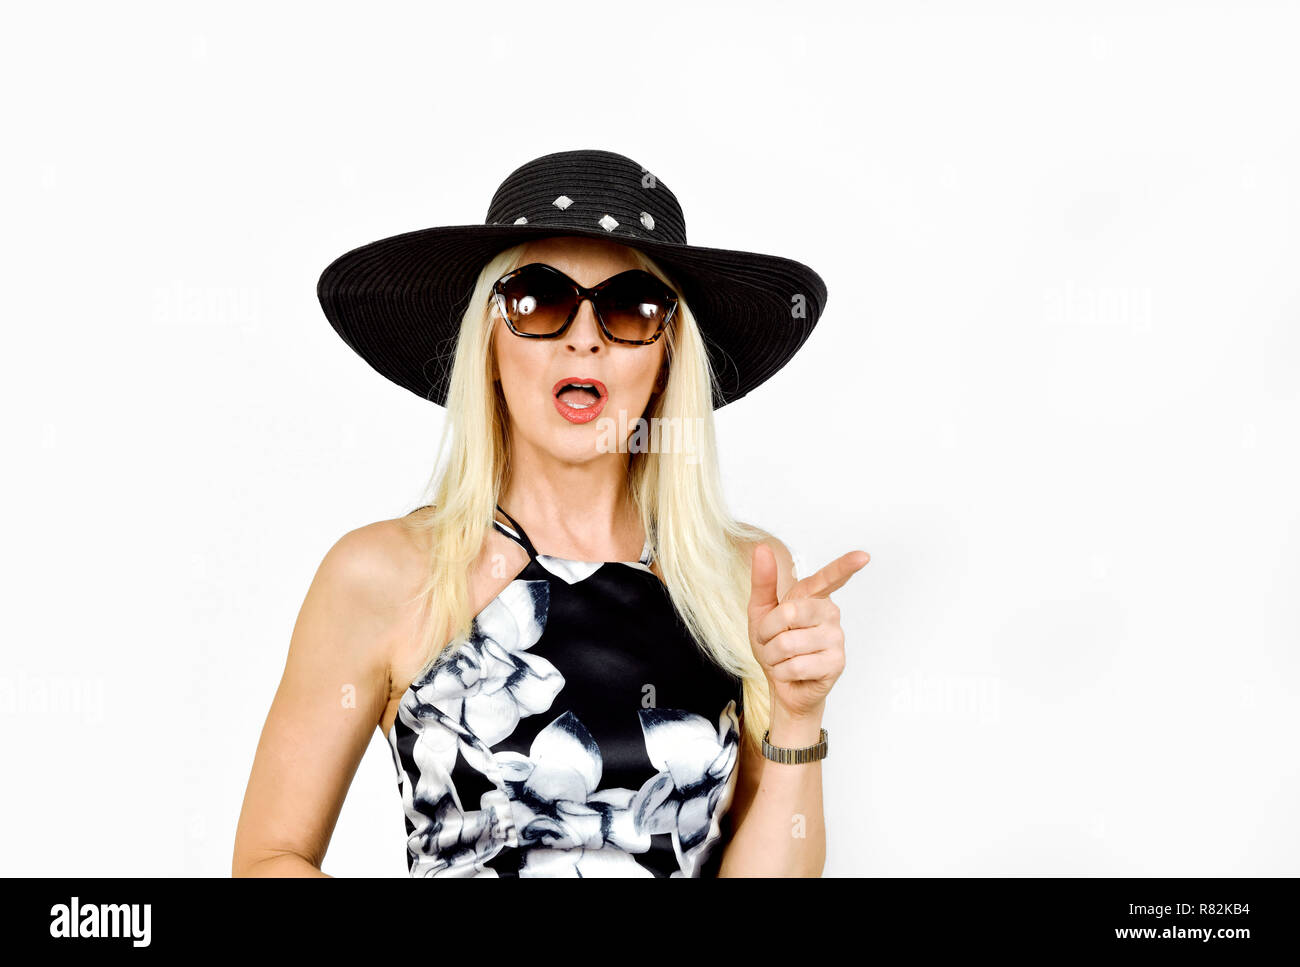 Attractive woman in pretty dress and hat with shocked expression and pointing finger, taken against white background - Stock Image